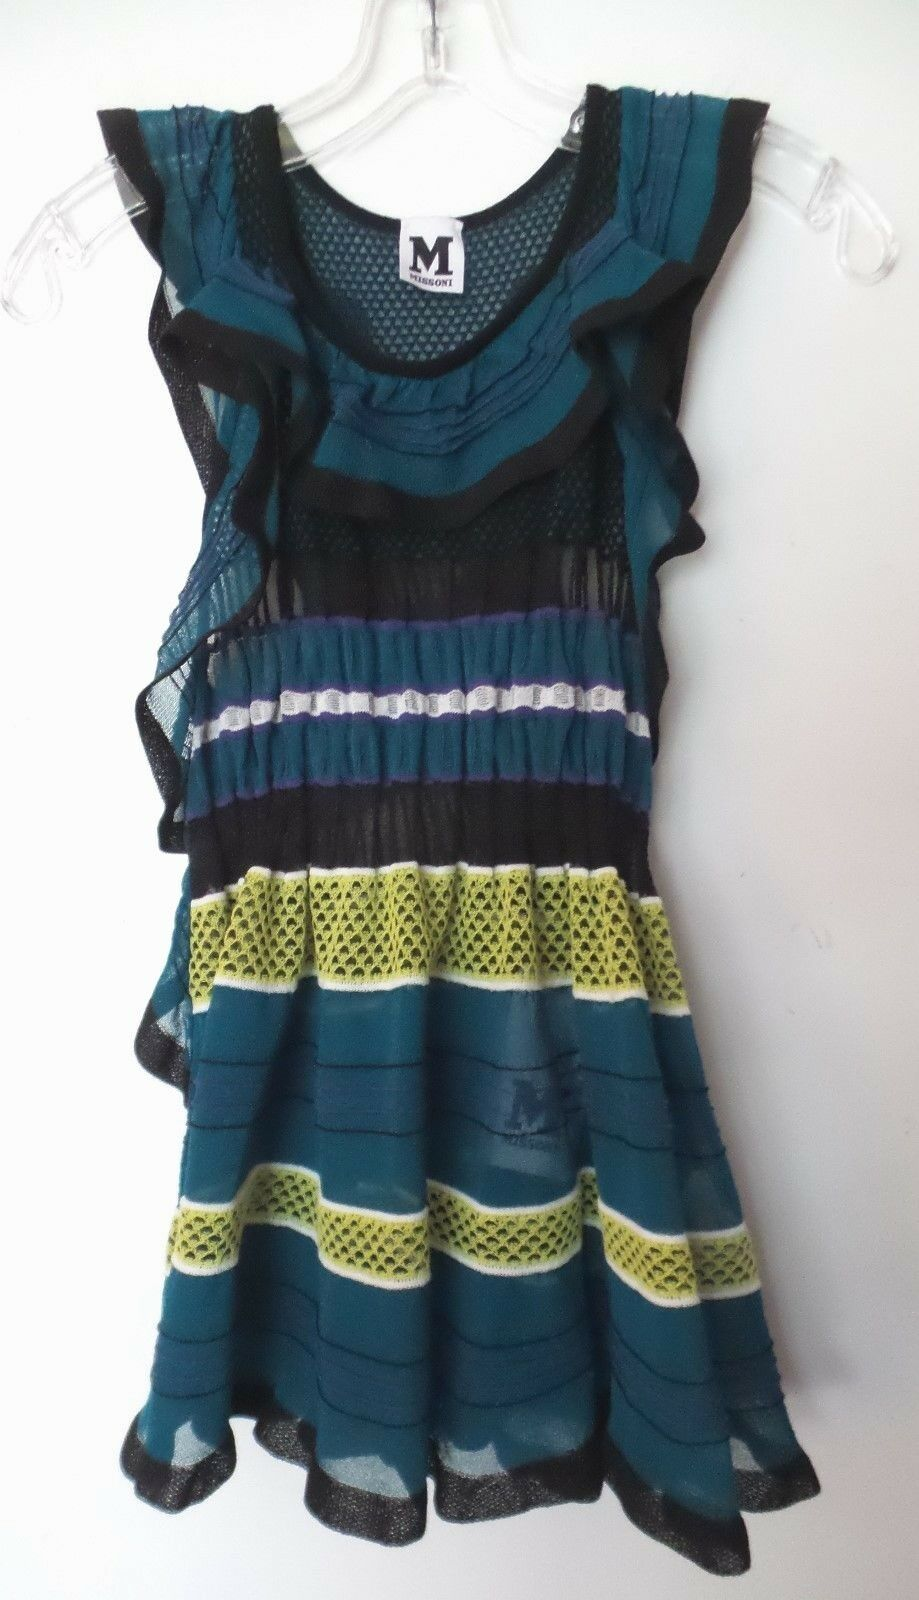 Missoni NWT Spring Knit Top Sweater Size US 6   S  IT 42 NEW WITH TAGS  495